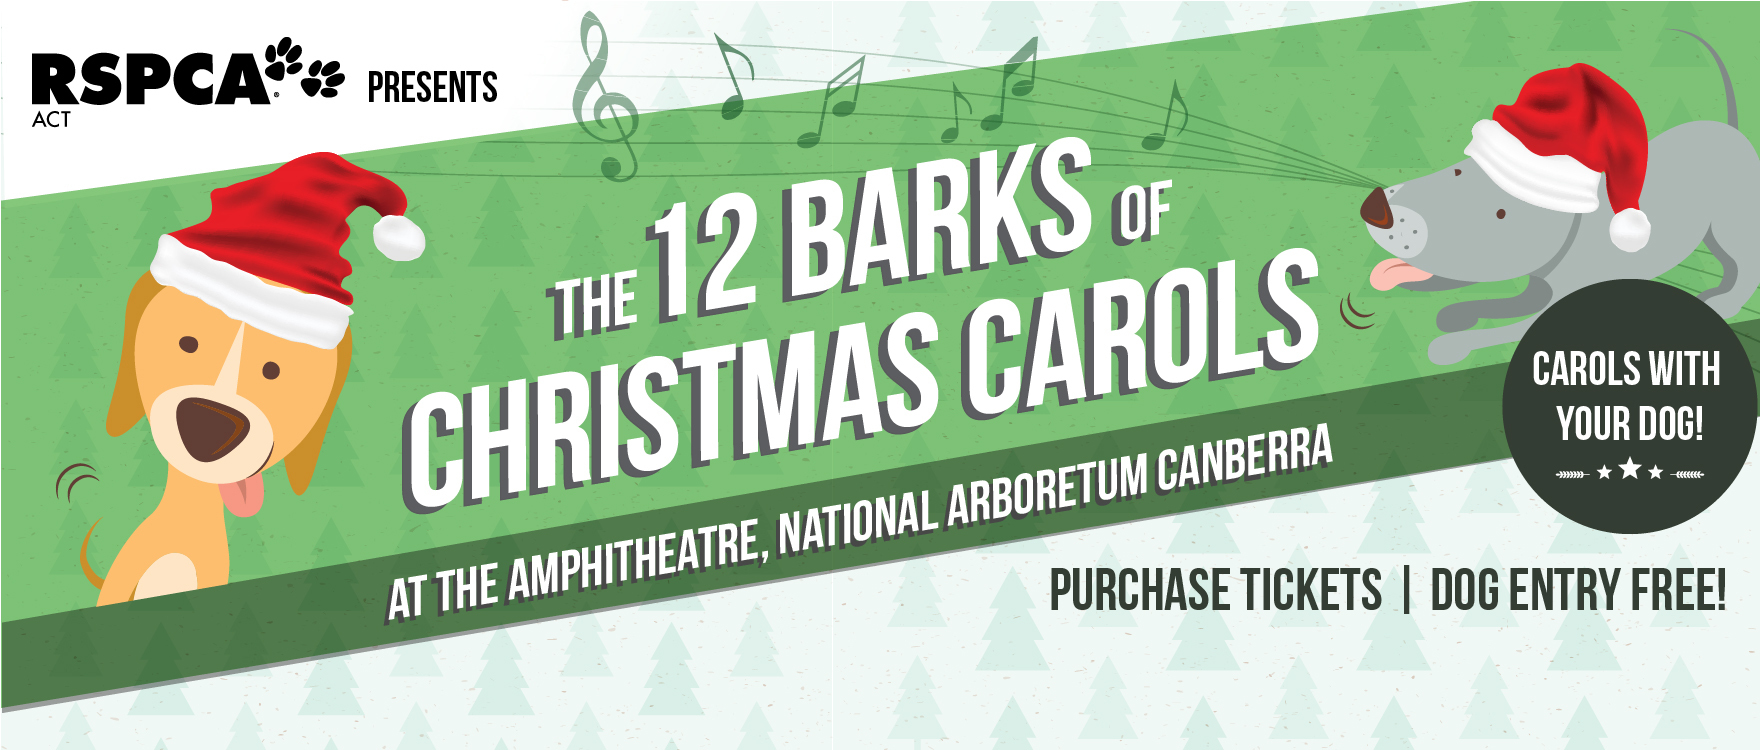 4 Christmas Events Just For Dogs 2016 - Canberra